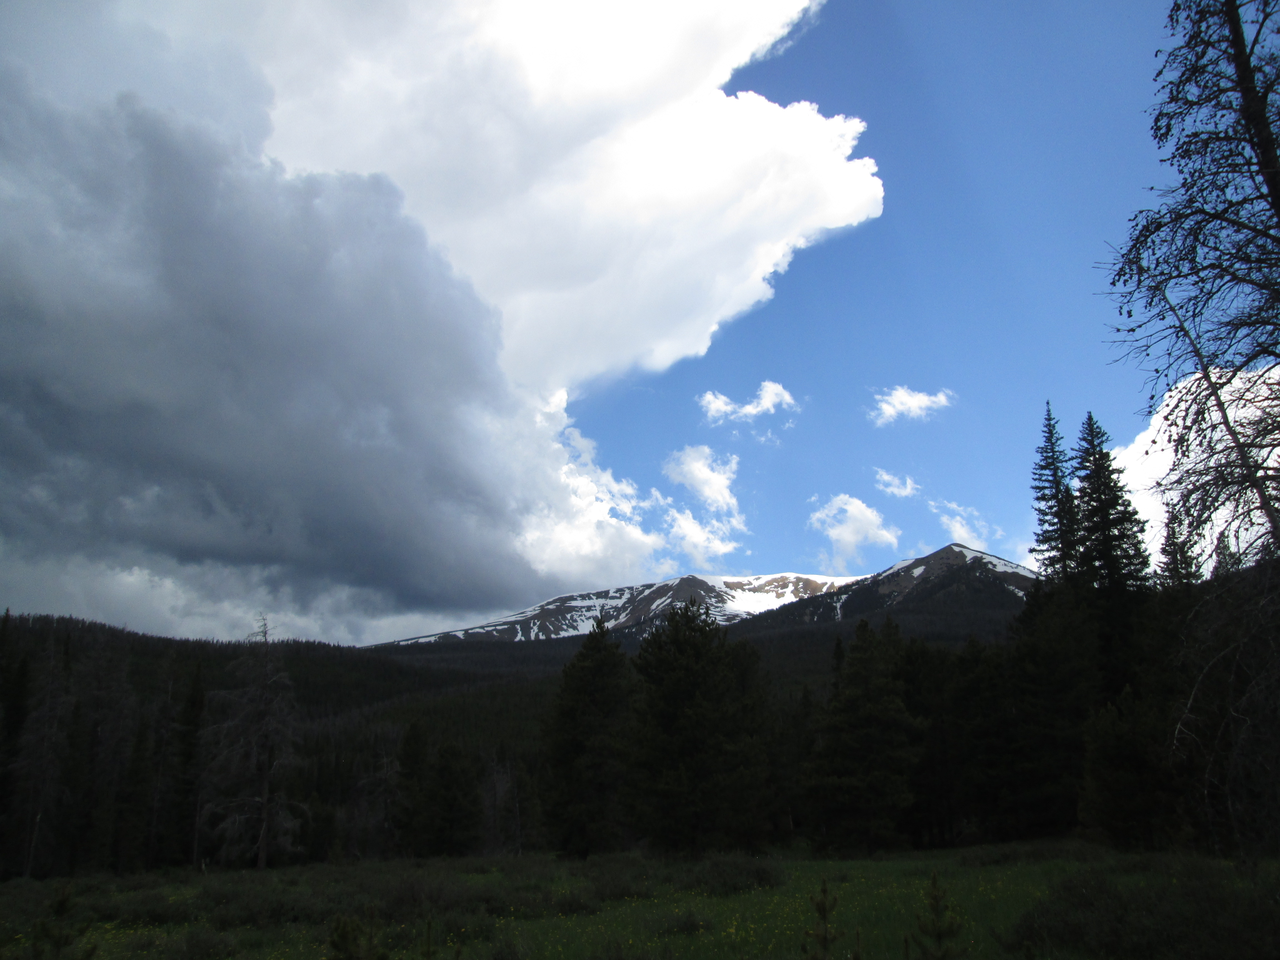 Snowcover in the upper Willow Creek drainage was rapidly melting on Parkview Mountain, seen on June 16, 2015 from the Willow Creek Pass CODOS site.